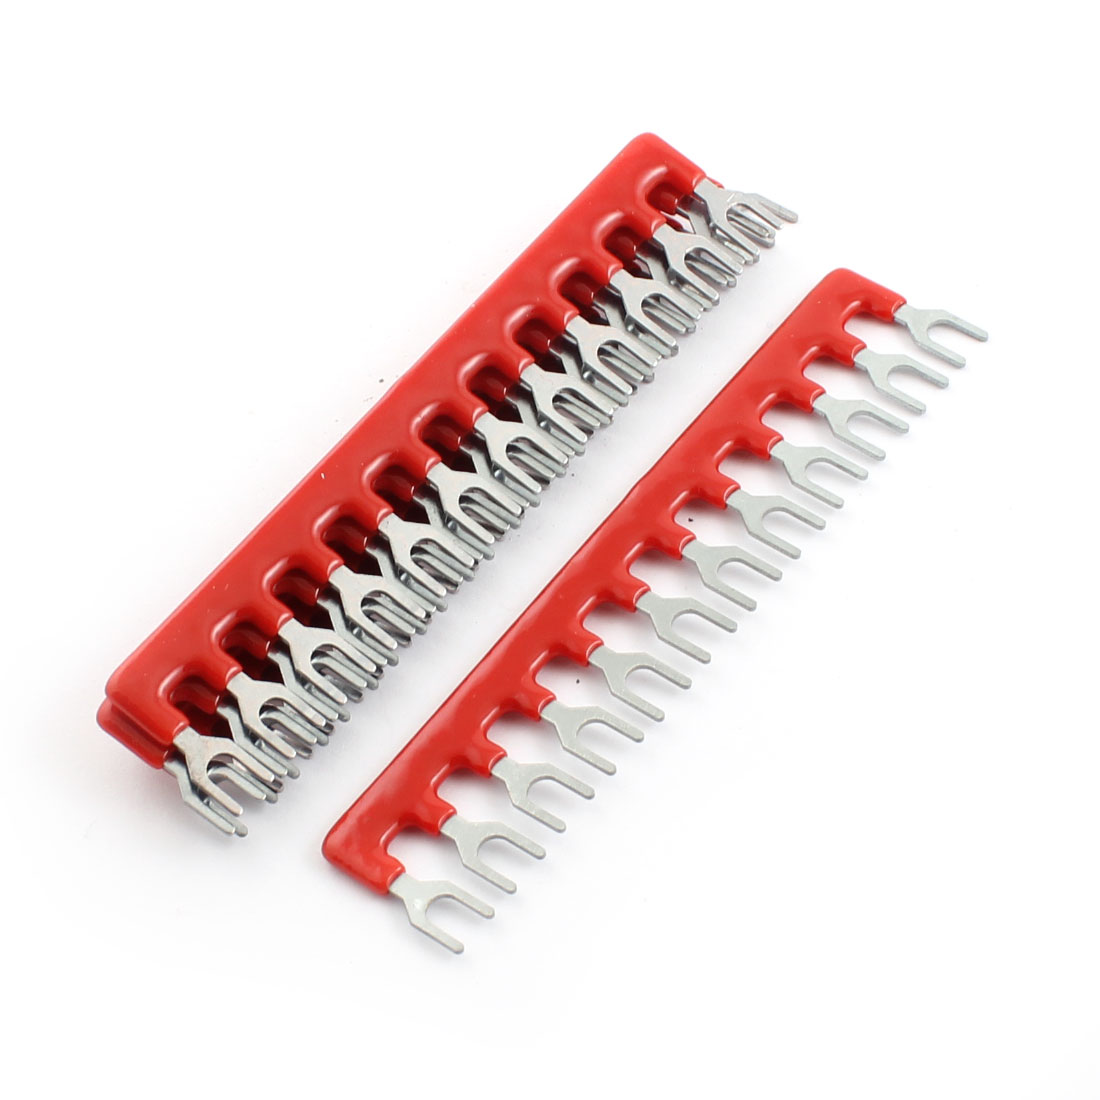 Unique Bargains 600V 25A 12 Postions Pre Insulated Terminal Strip Jumper Red 5Pcs